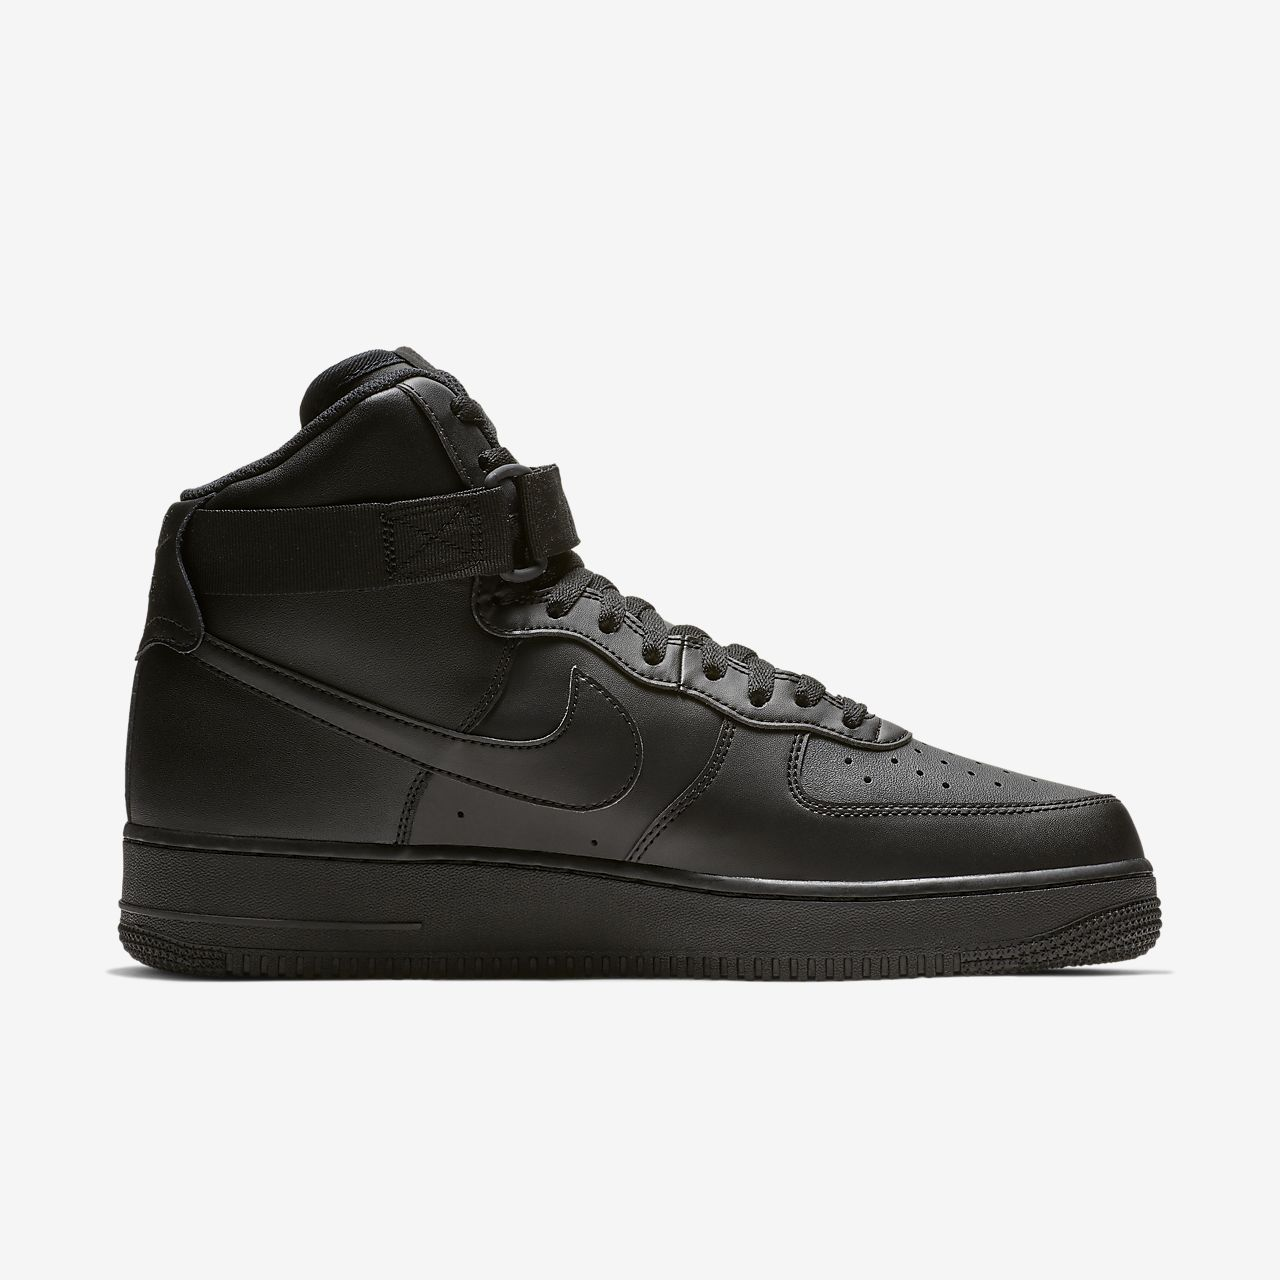 nike air force 1 black men's